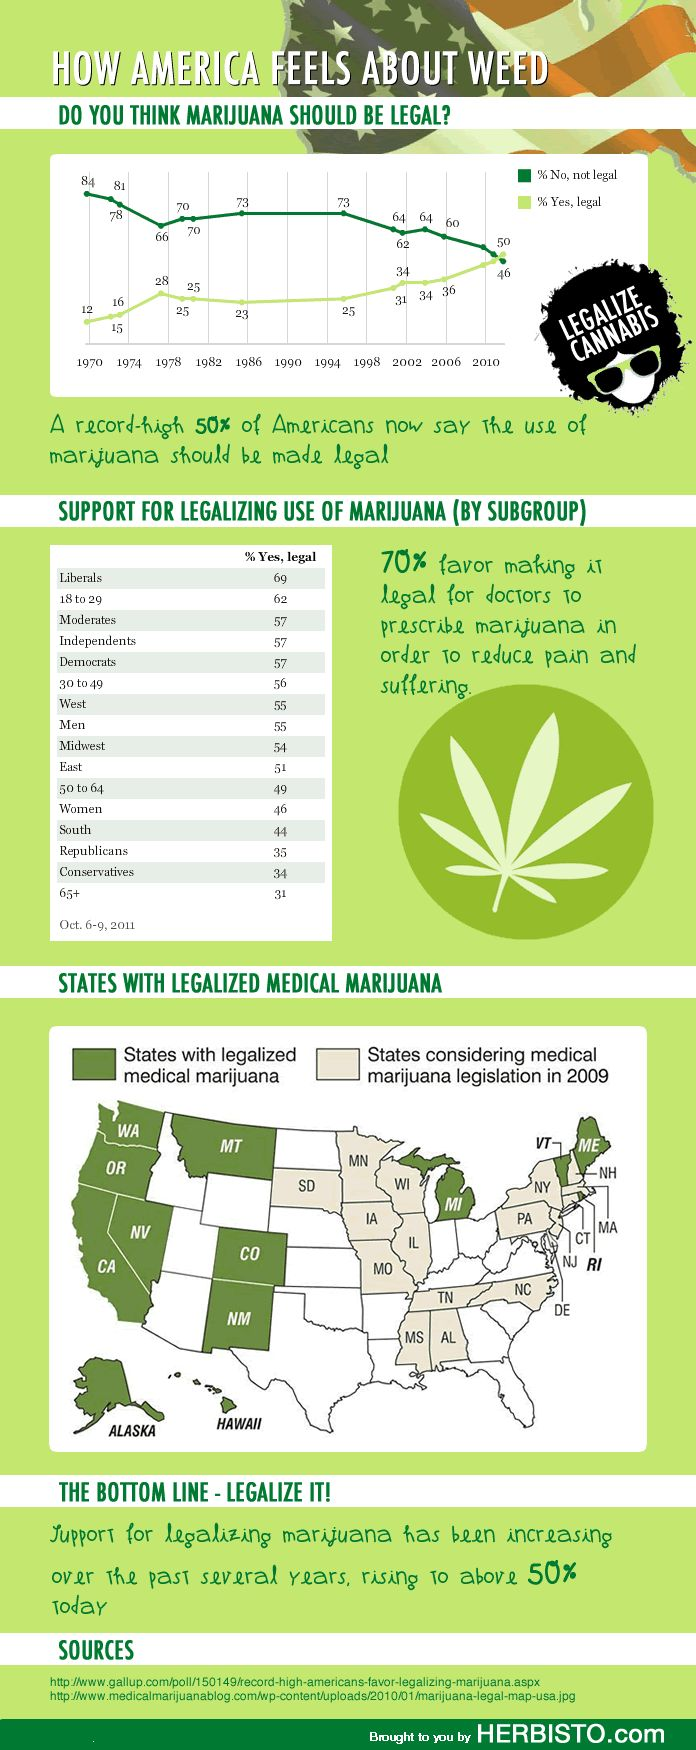 Design Pros And Cons Of Weed 69 best marijuana infographics images on pinterest over 50 of americans believe should be legalized what do you think